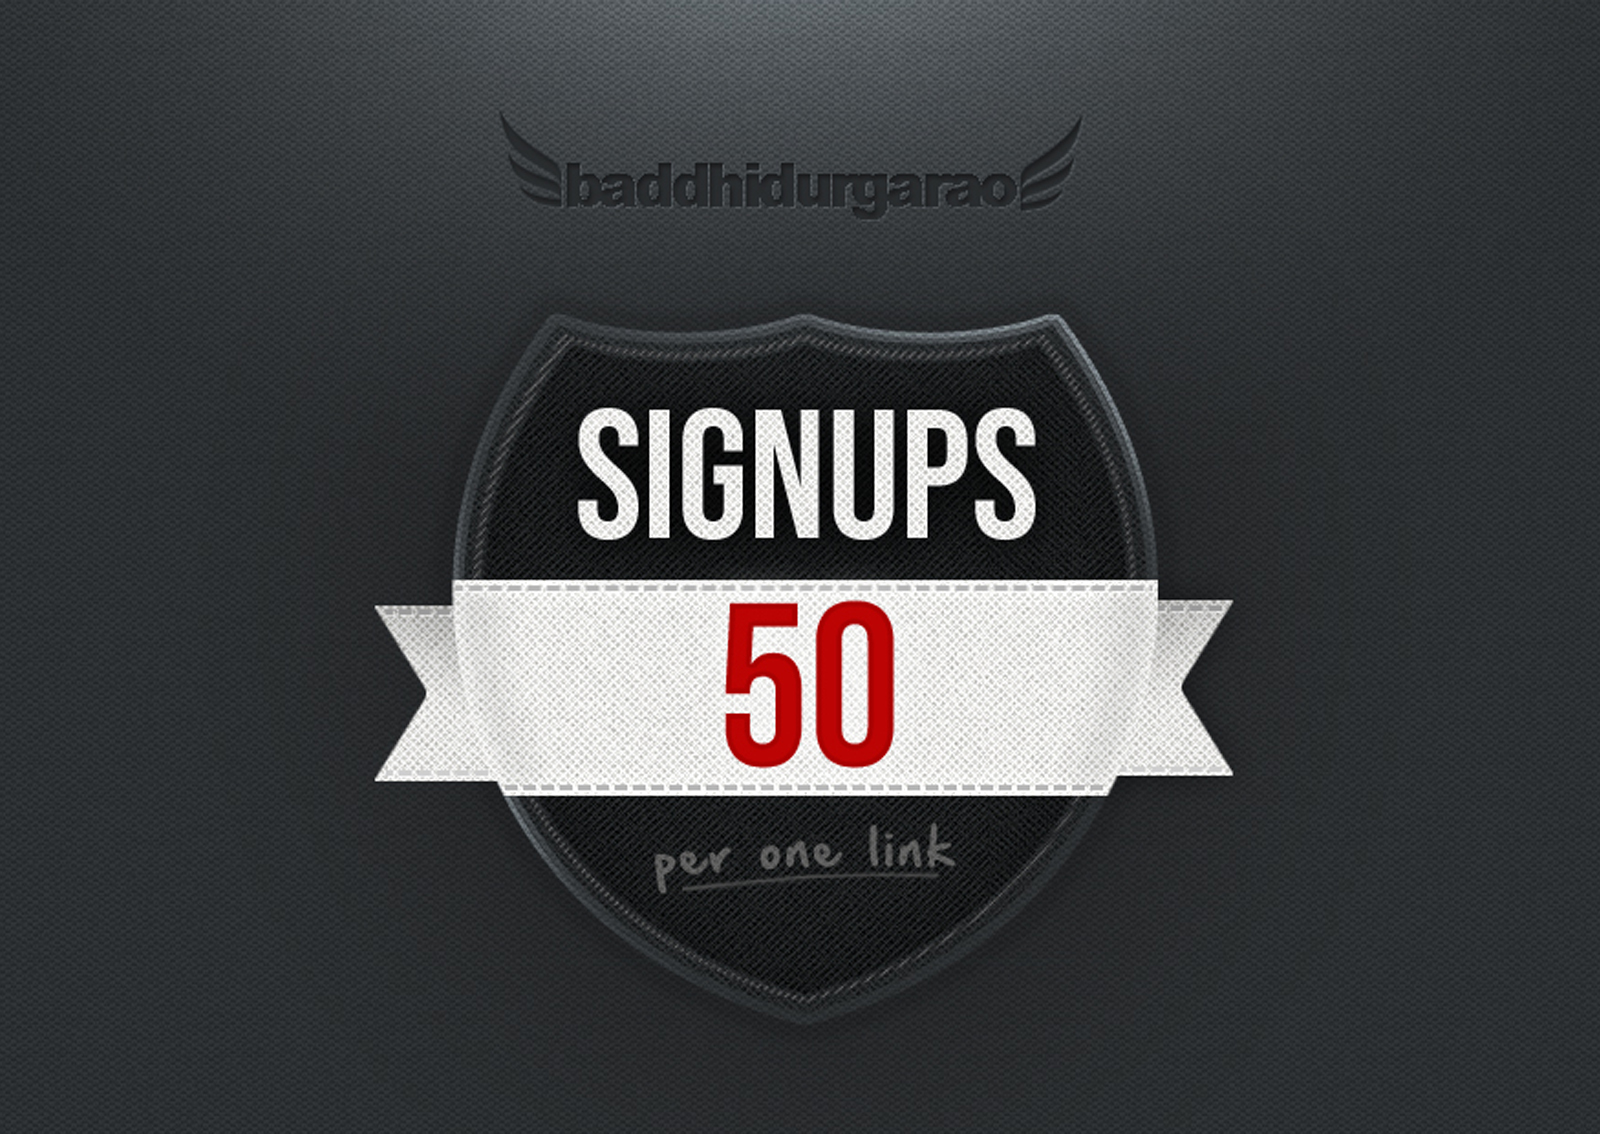 Get 50 Website Signups with Email Confirm